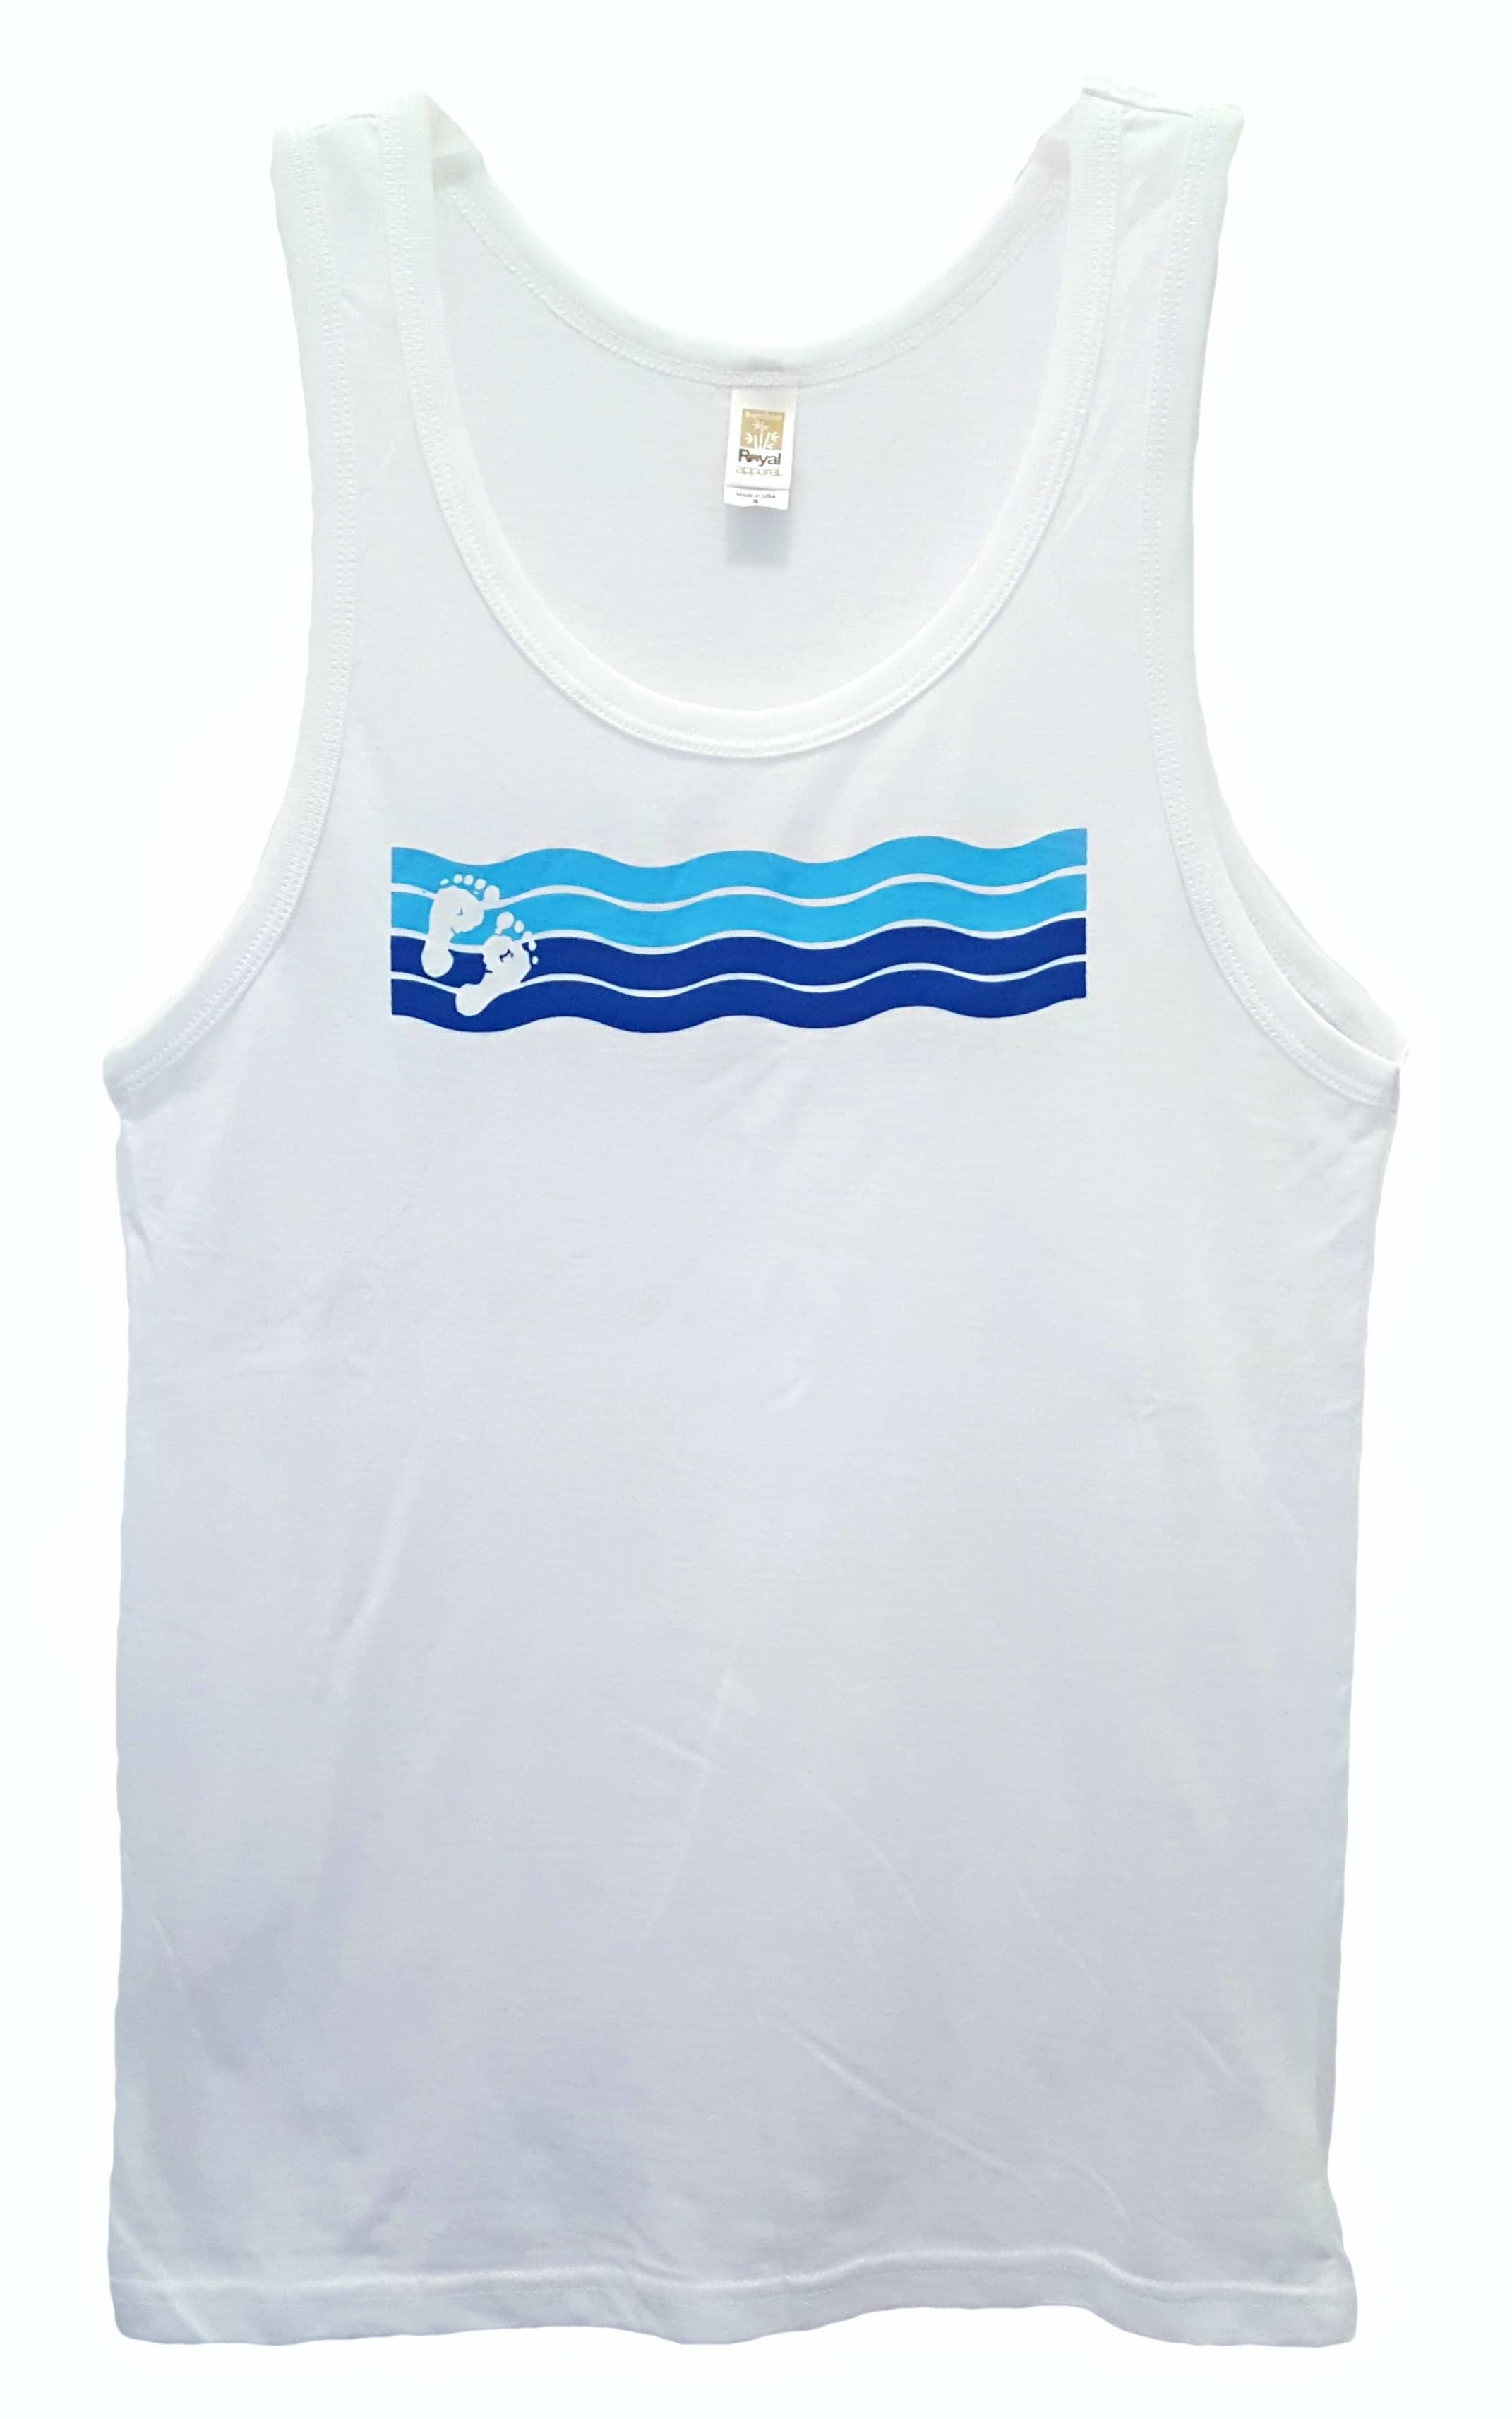 a36398e2bfb0f Wave Tank Unisex Bamboo Organic Cotton - Barefoot Eco Outfitters